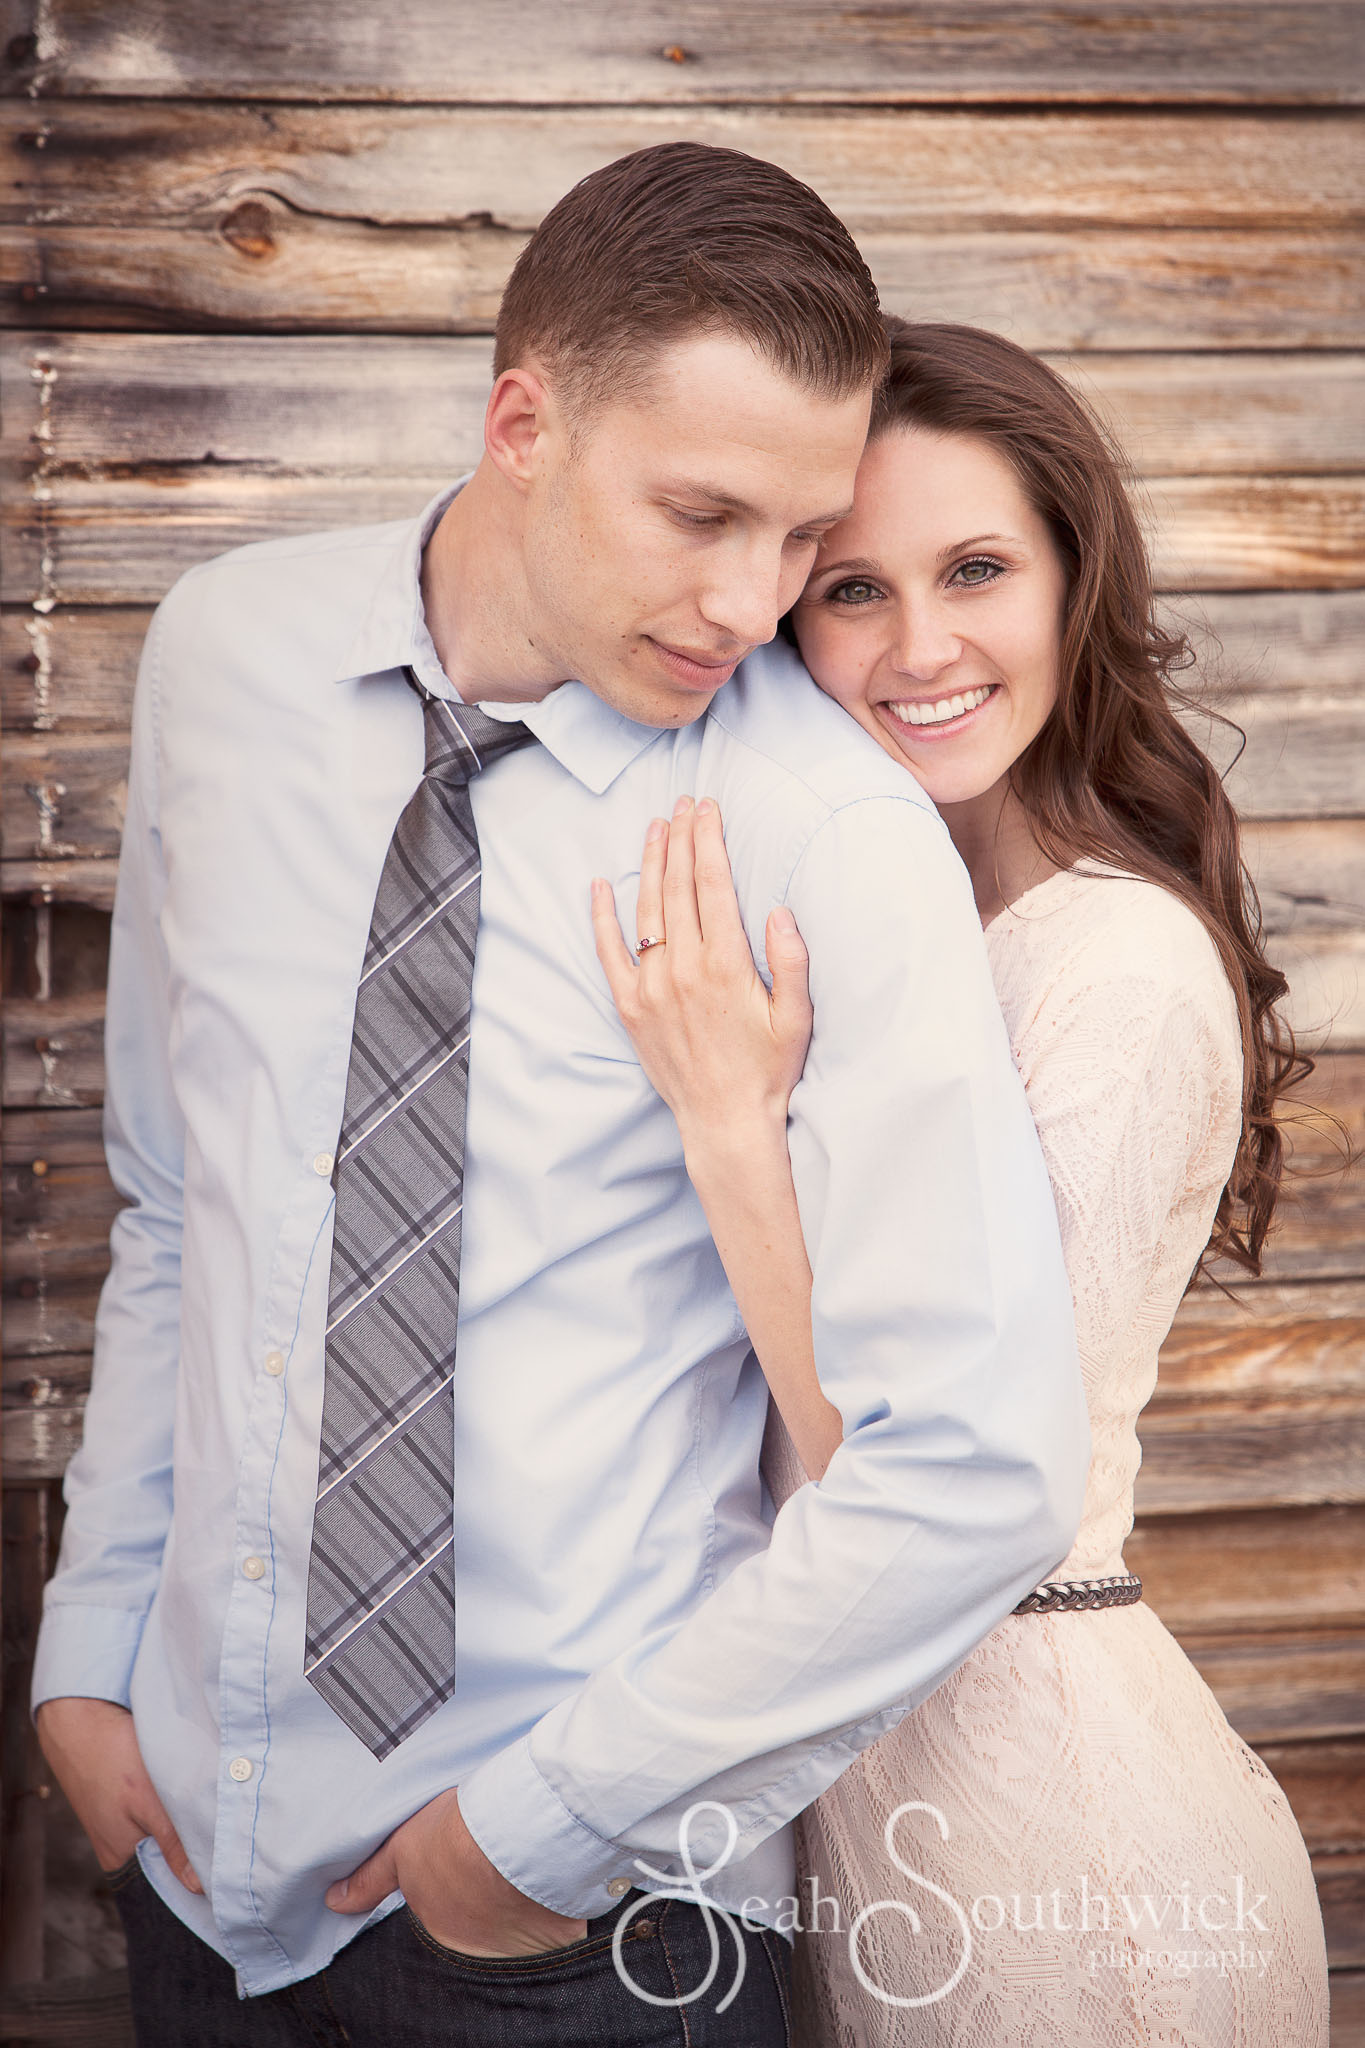 Engagement Photography Leah Southwick Photography-9.jpg